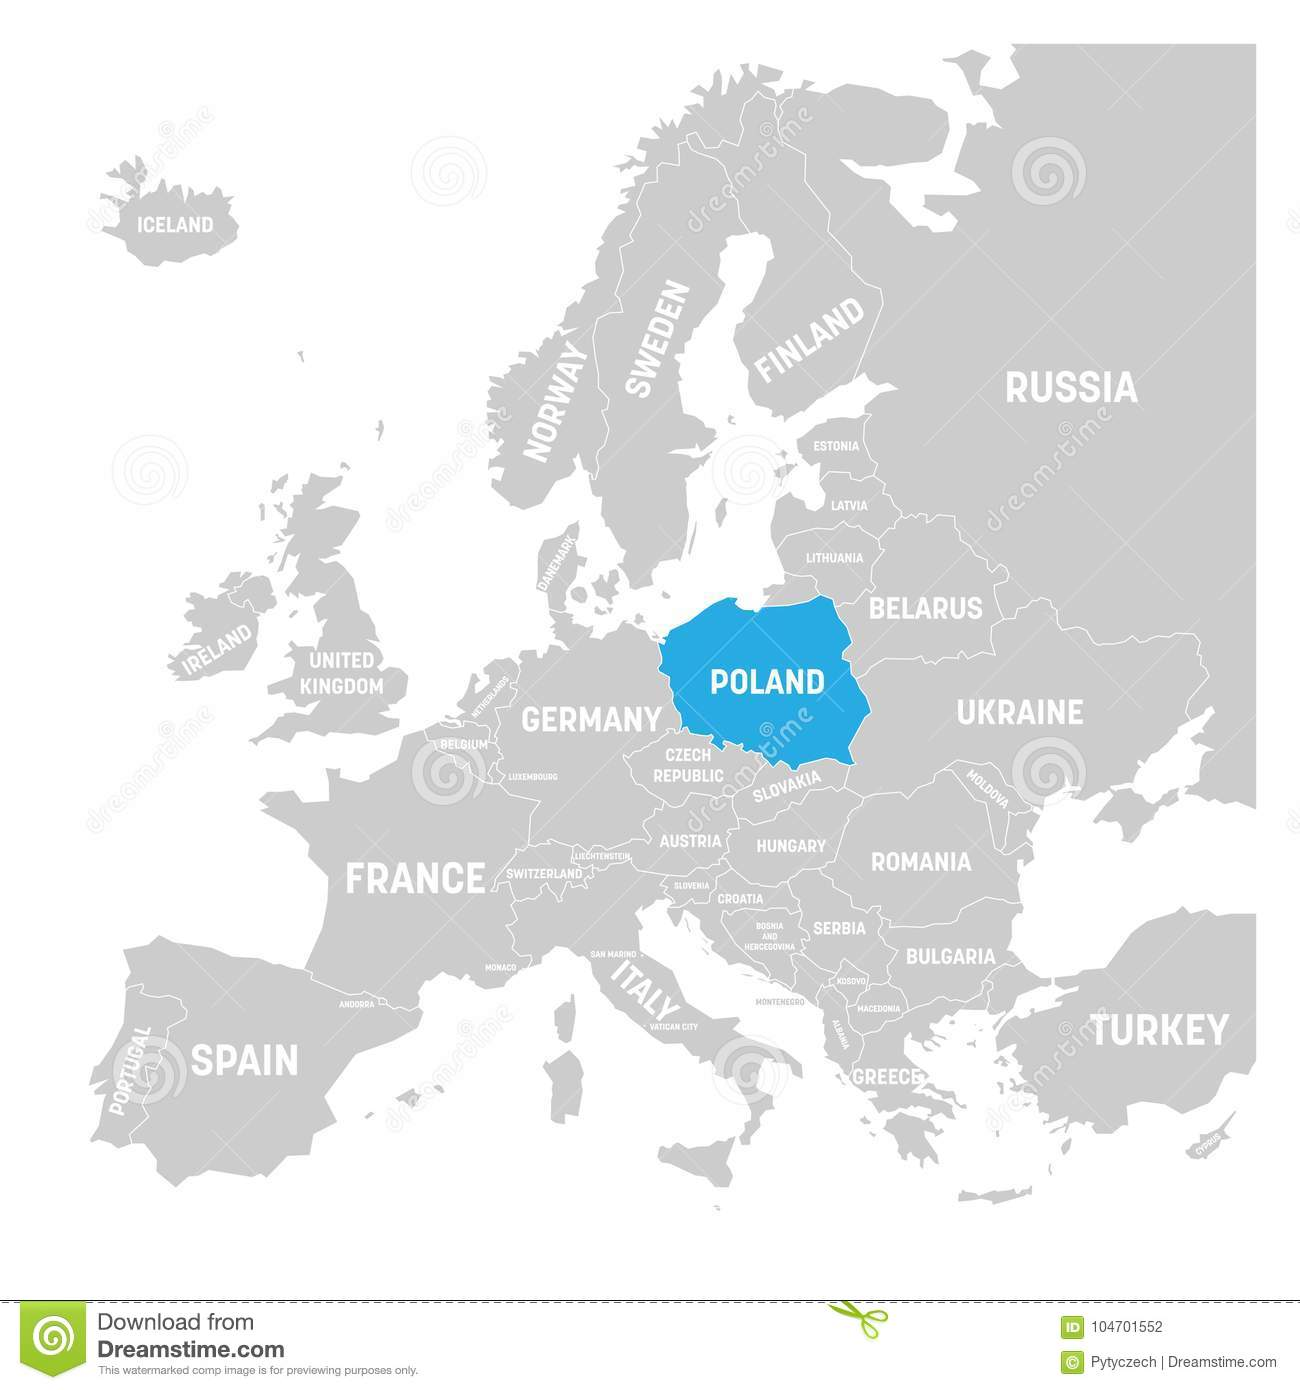 Poland Marked By Blue In Grey Political Map Of Europe. Vector ...